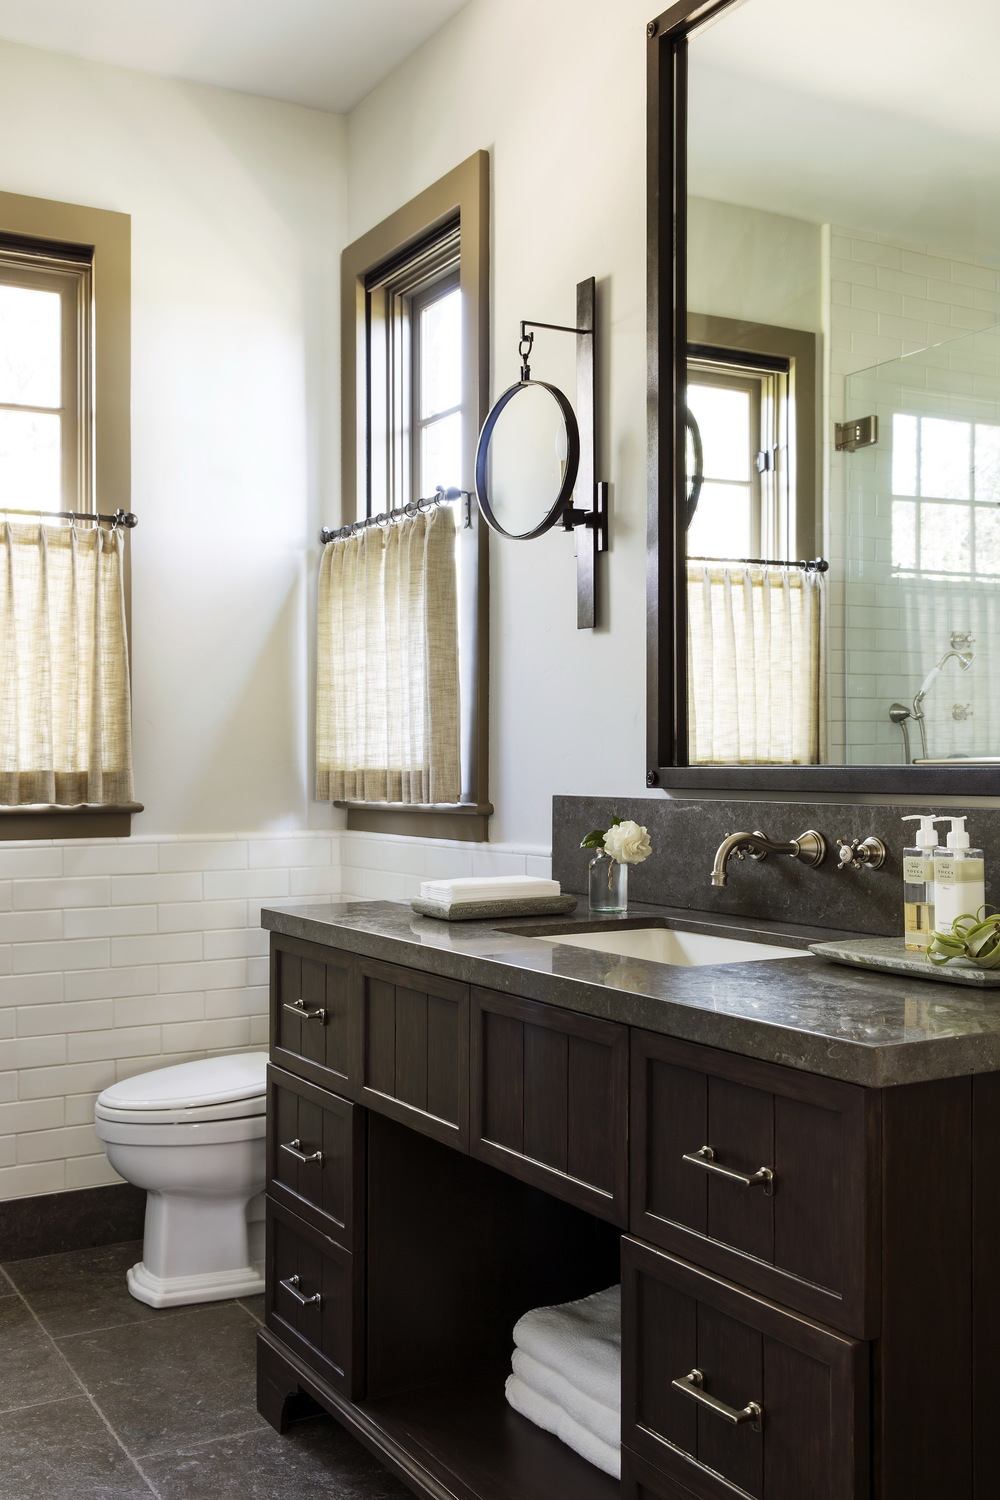 13 Brentwood Pennsylvania Stone Farm House Guest Bathroom.jpg